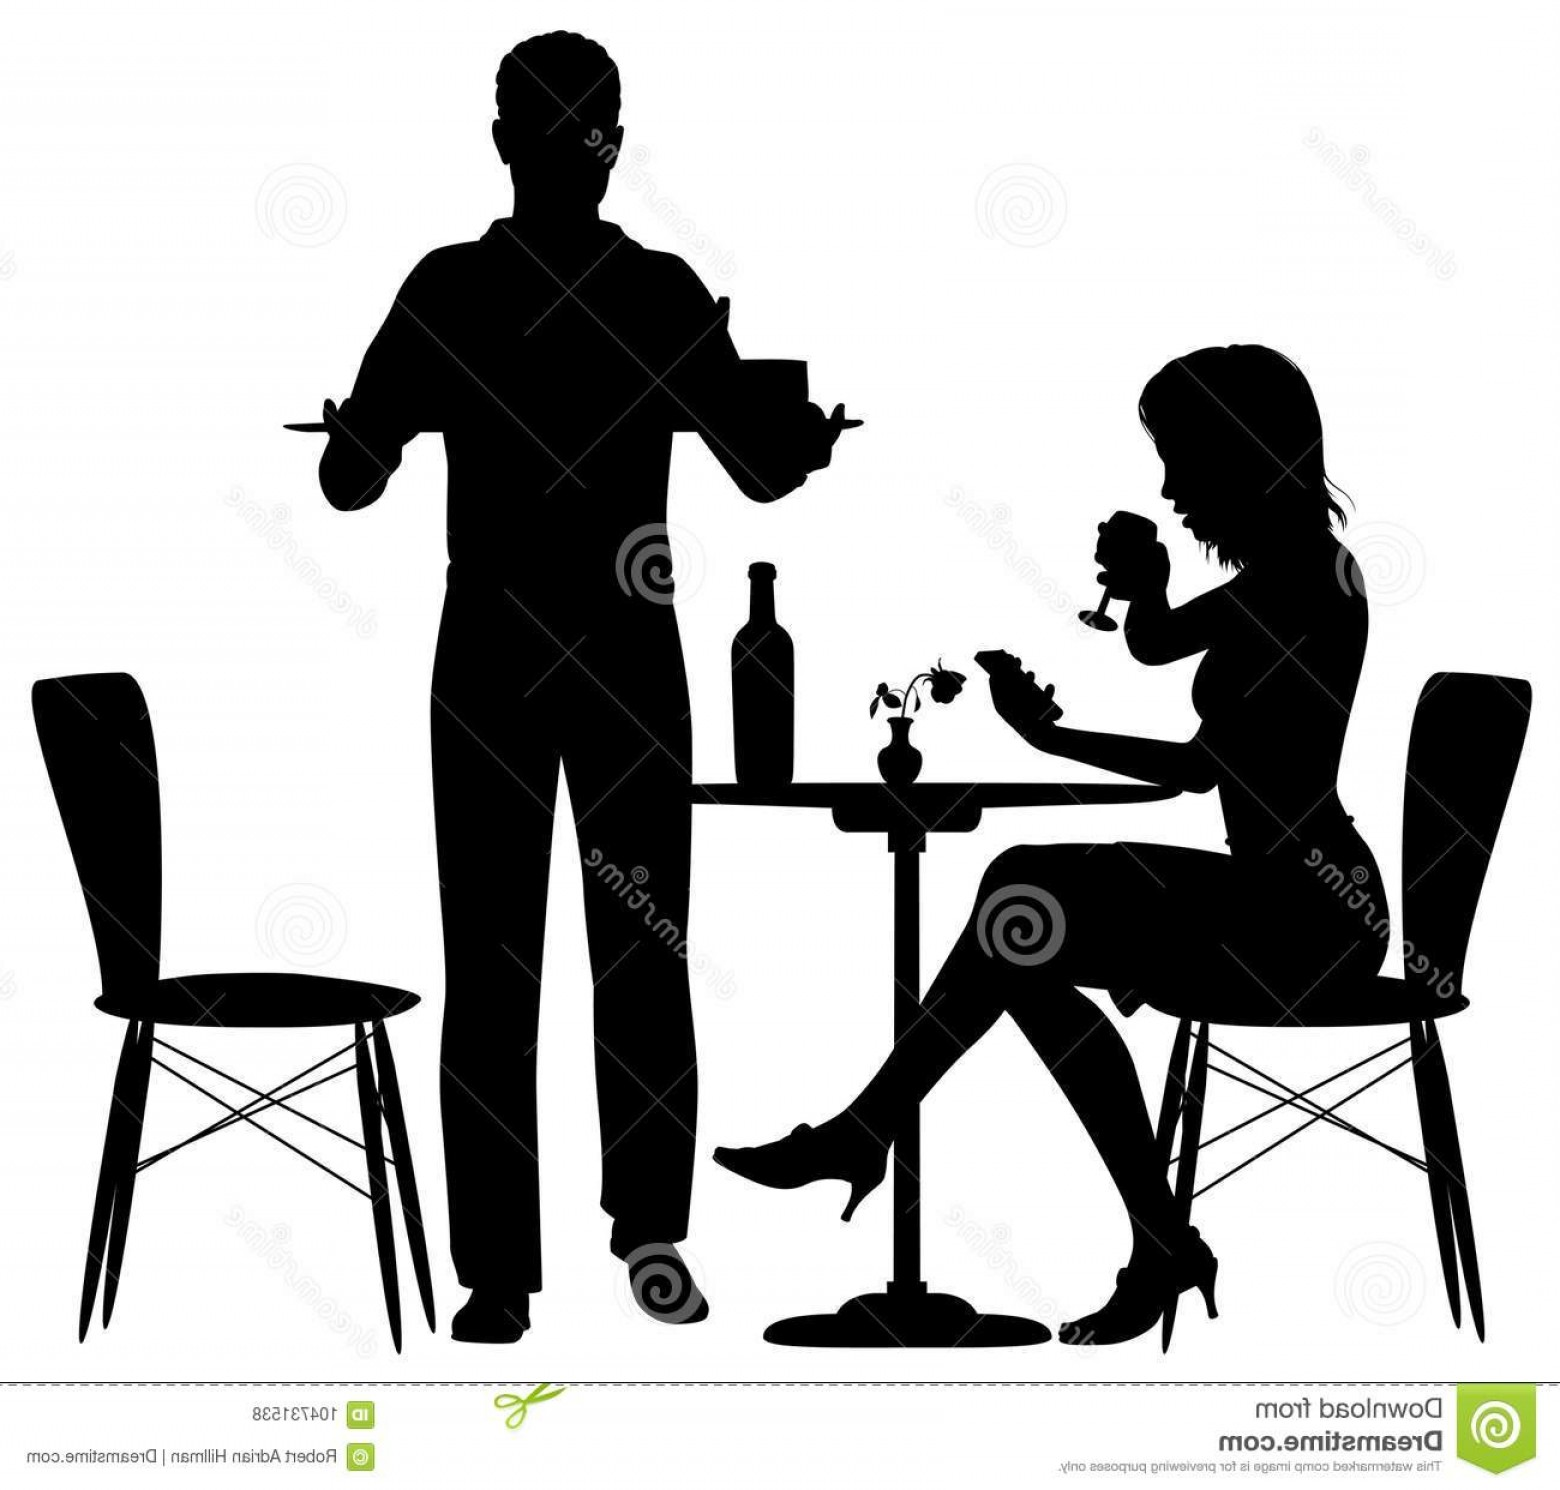 Serving Vector: Man Serving Meal Editable Vector Illustration Woman Being Served Food Man Who Could Be Waiter Her Partner Image